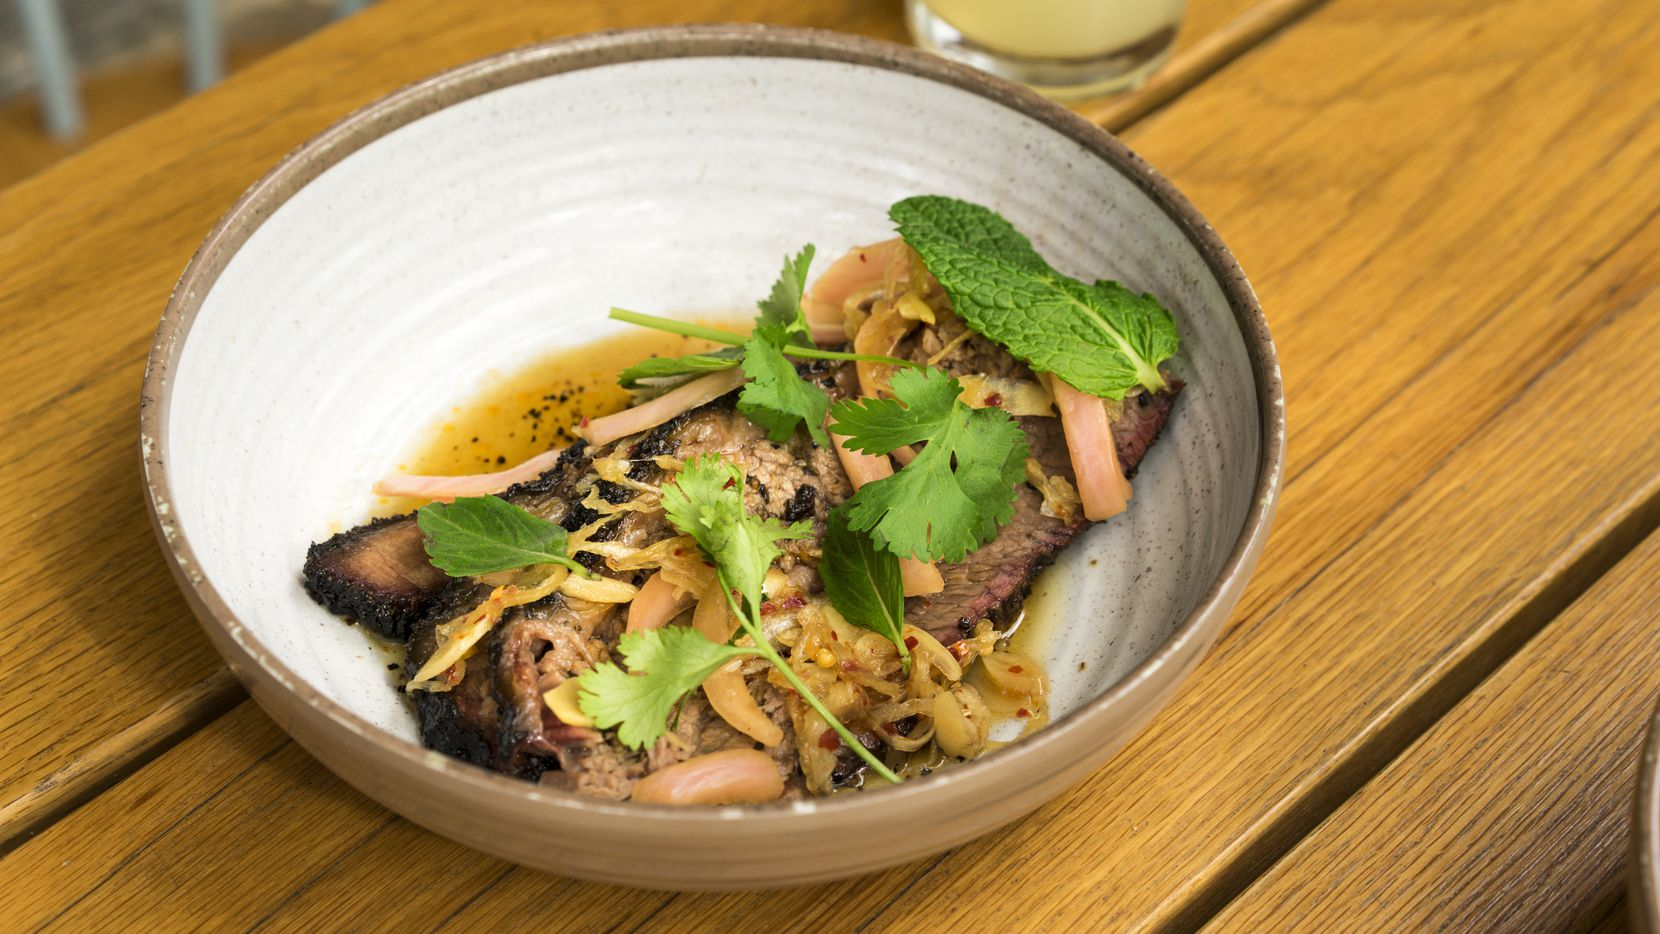 Smoked beef brisket with chili gastrique and Thai herbs is one of the more popular dishes at Loro. It shows off the flavor play between pitmaster Aaron Franklin, of Franklin Barbecue, and chef Tyson Cole, of Japanese restaurant Uchi.